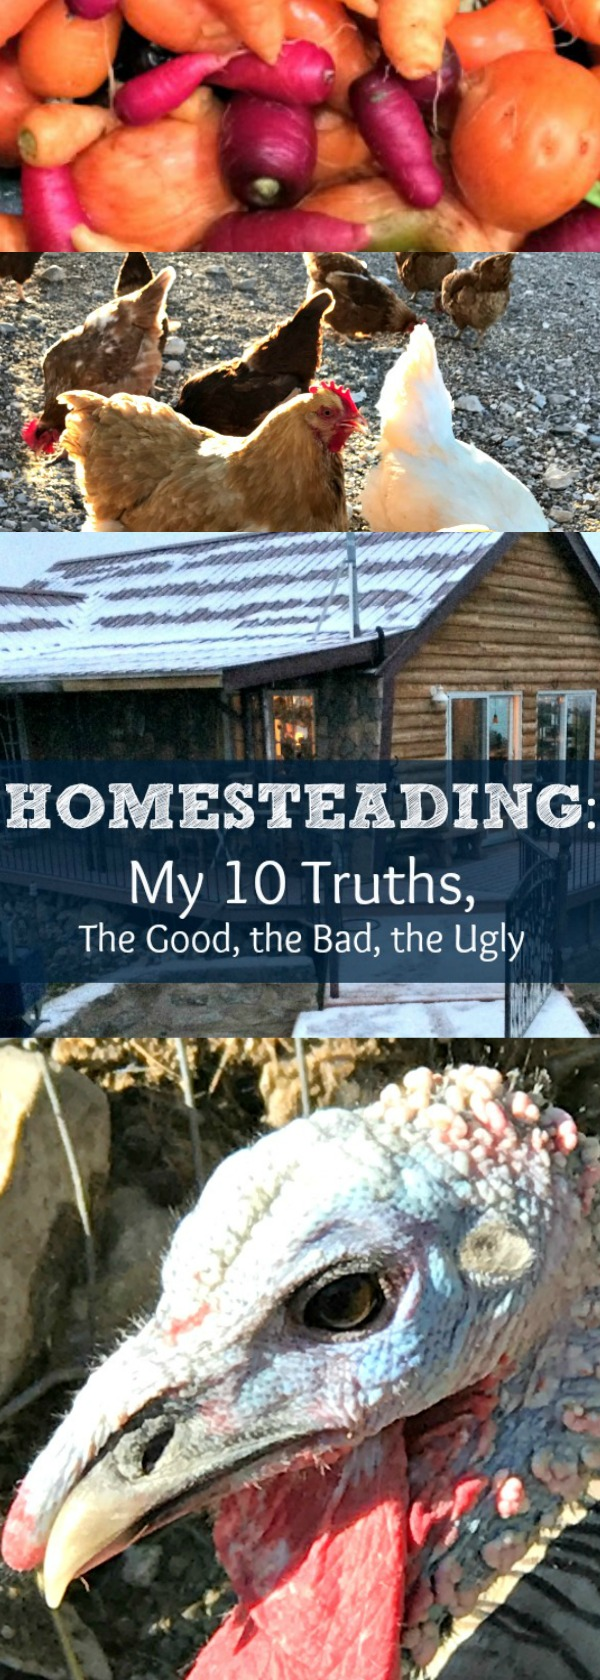 Homesteading is hard to define. It means different things to different folks. Here is my definition of homesteading. What is homesteading? How do you do it? Where can you homestead? Find out my truths about the homesteading life!